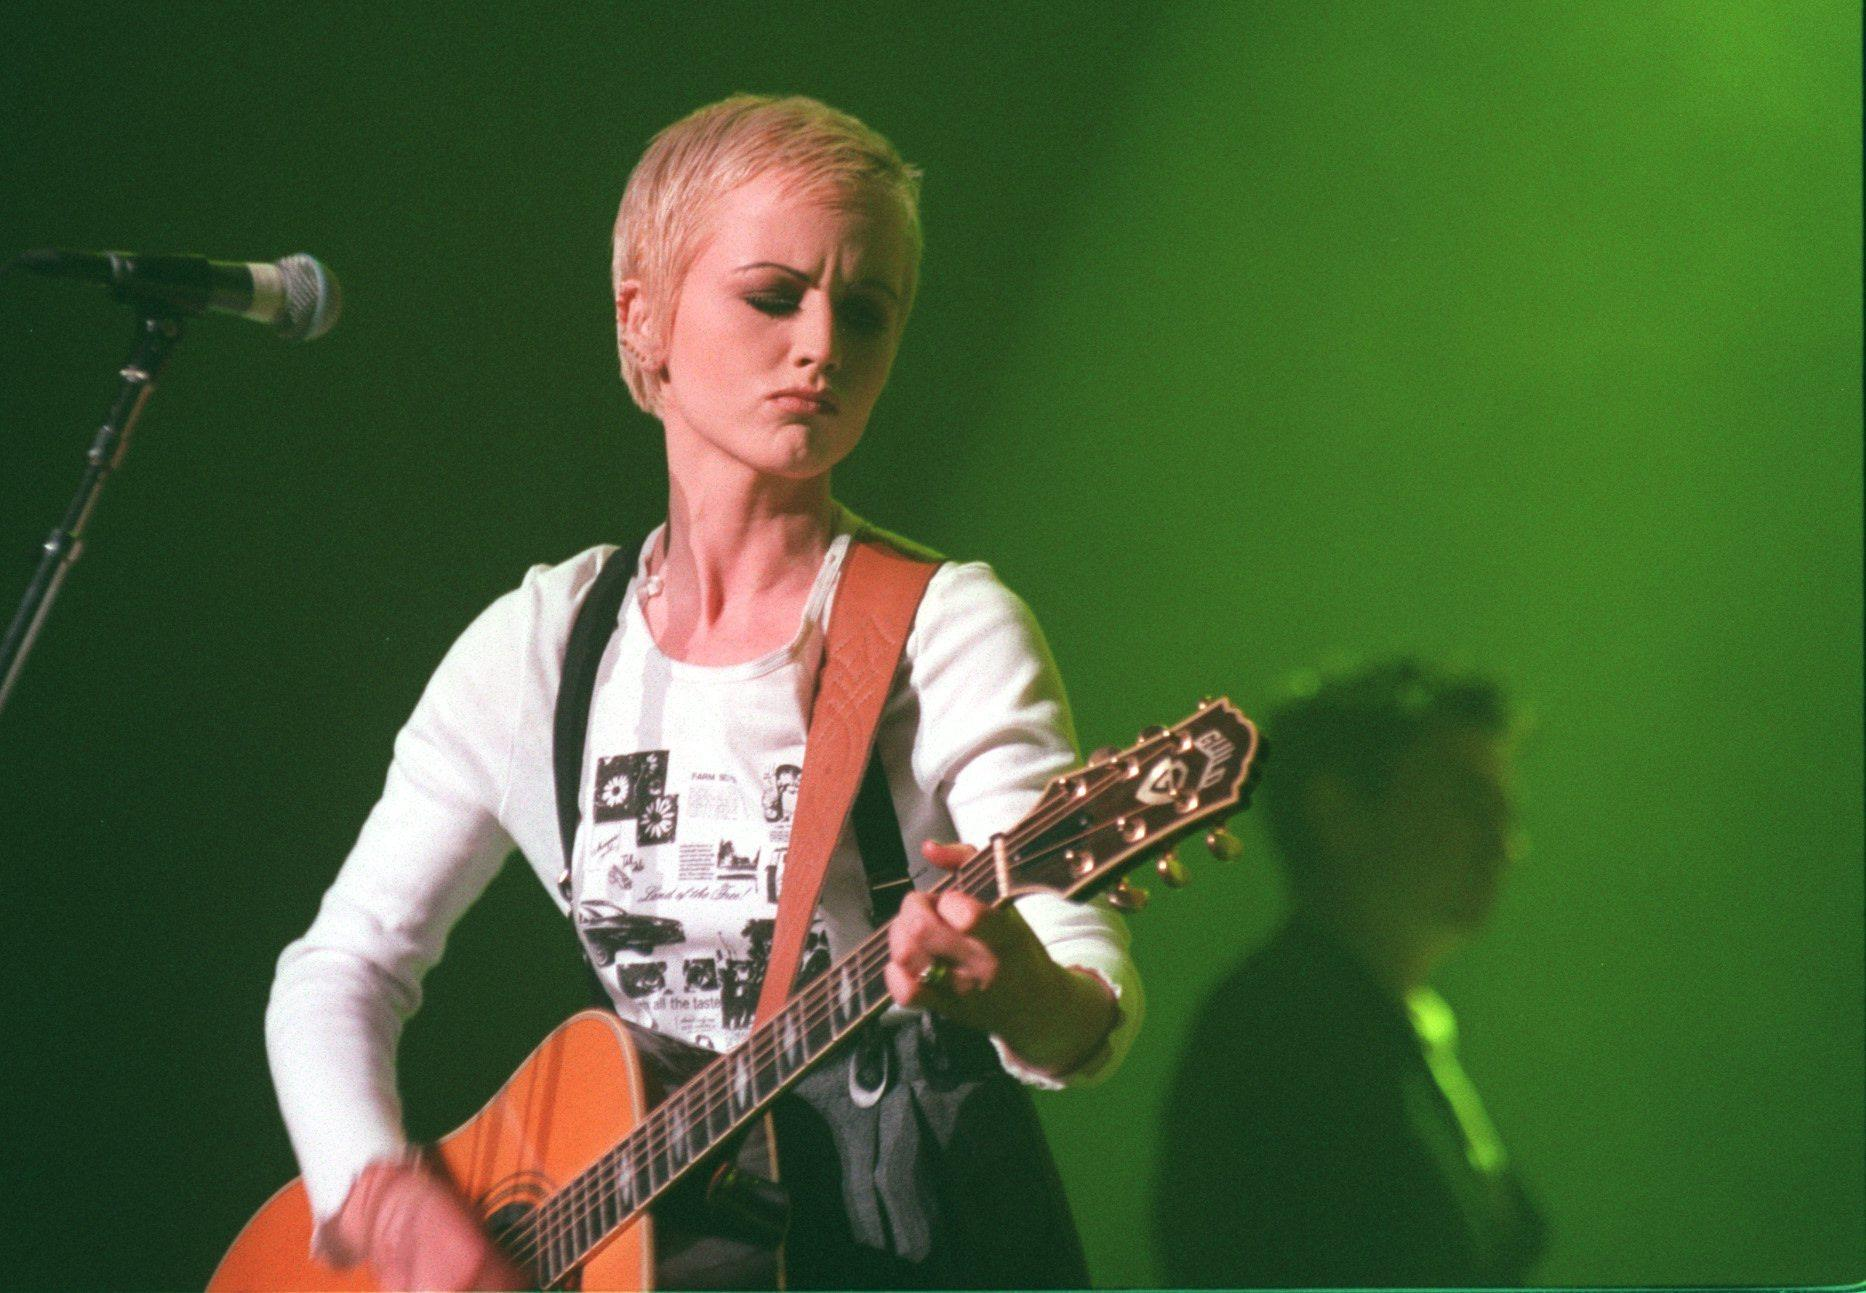 Dolores O'Riordan performs with the Cranberries at the Wiltern in Los Angeles in 1994. (Carolyn Cole / Los Angeles Times)